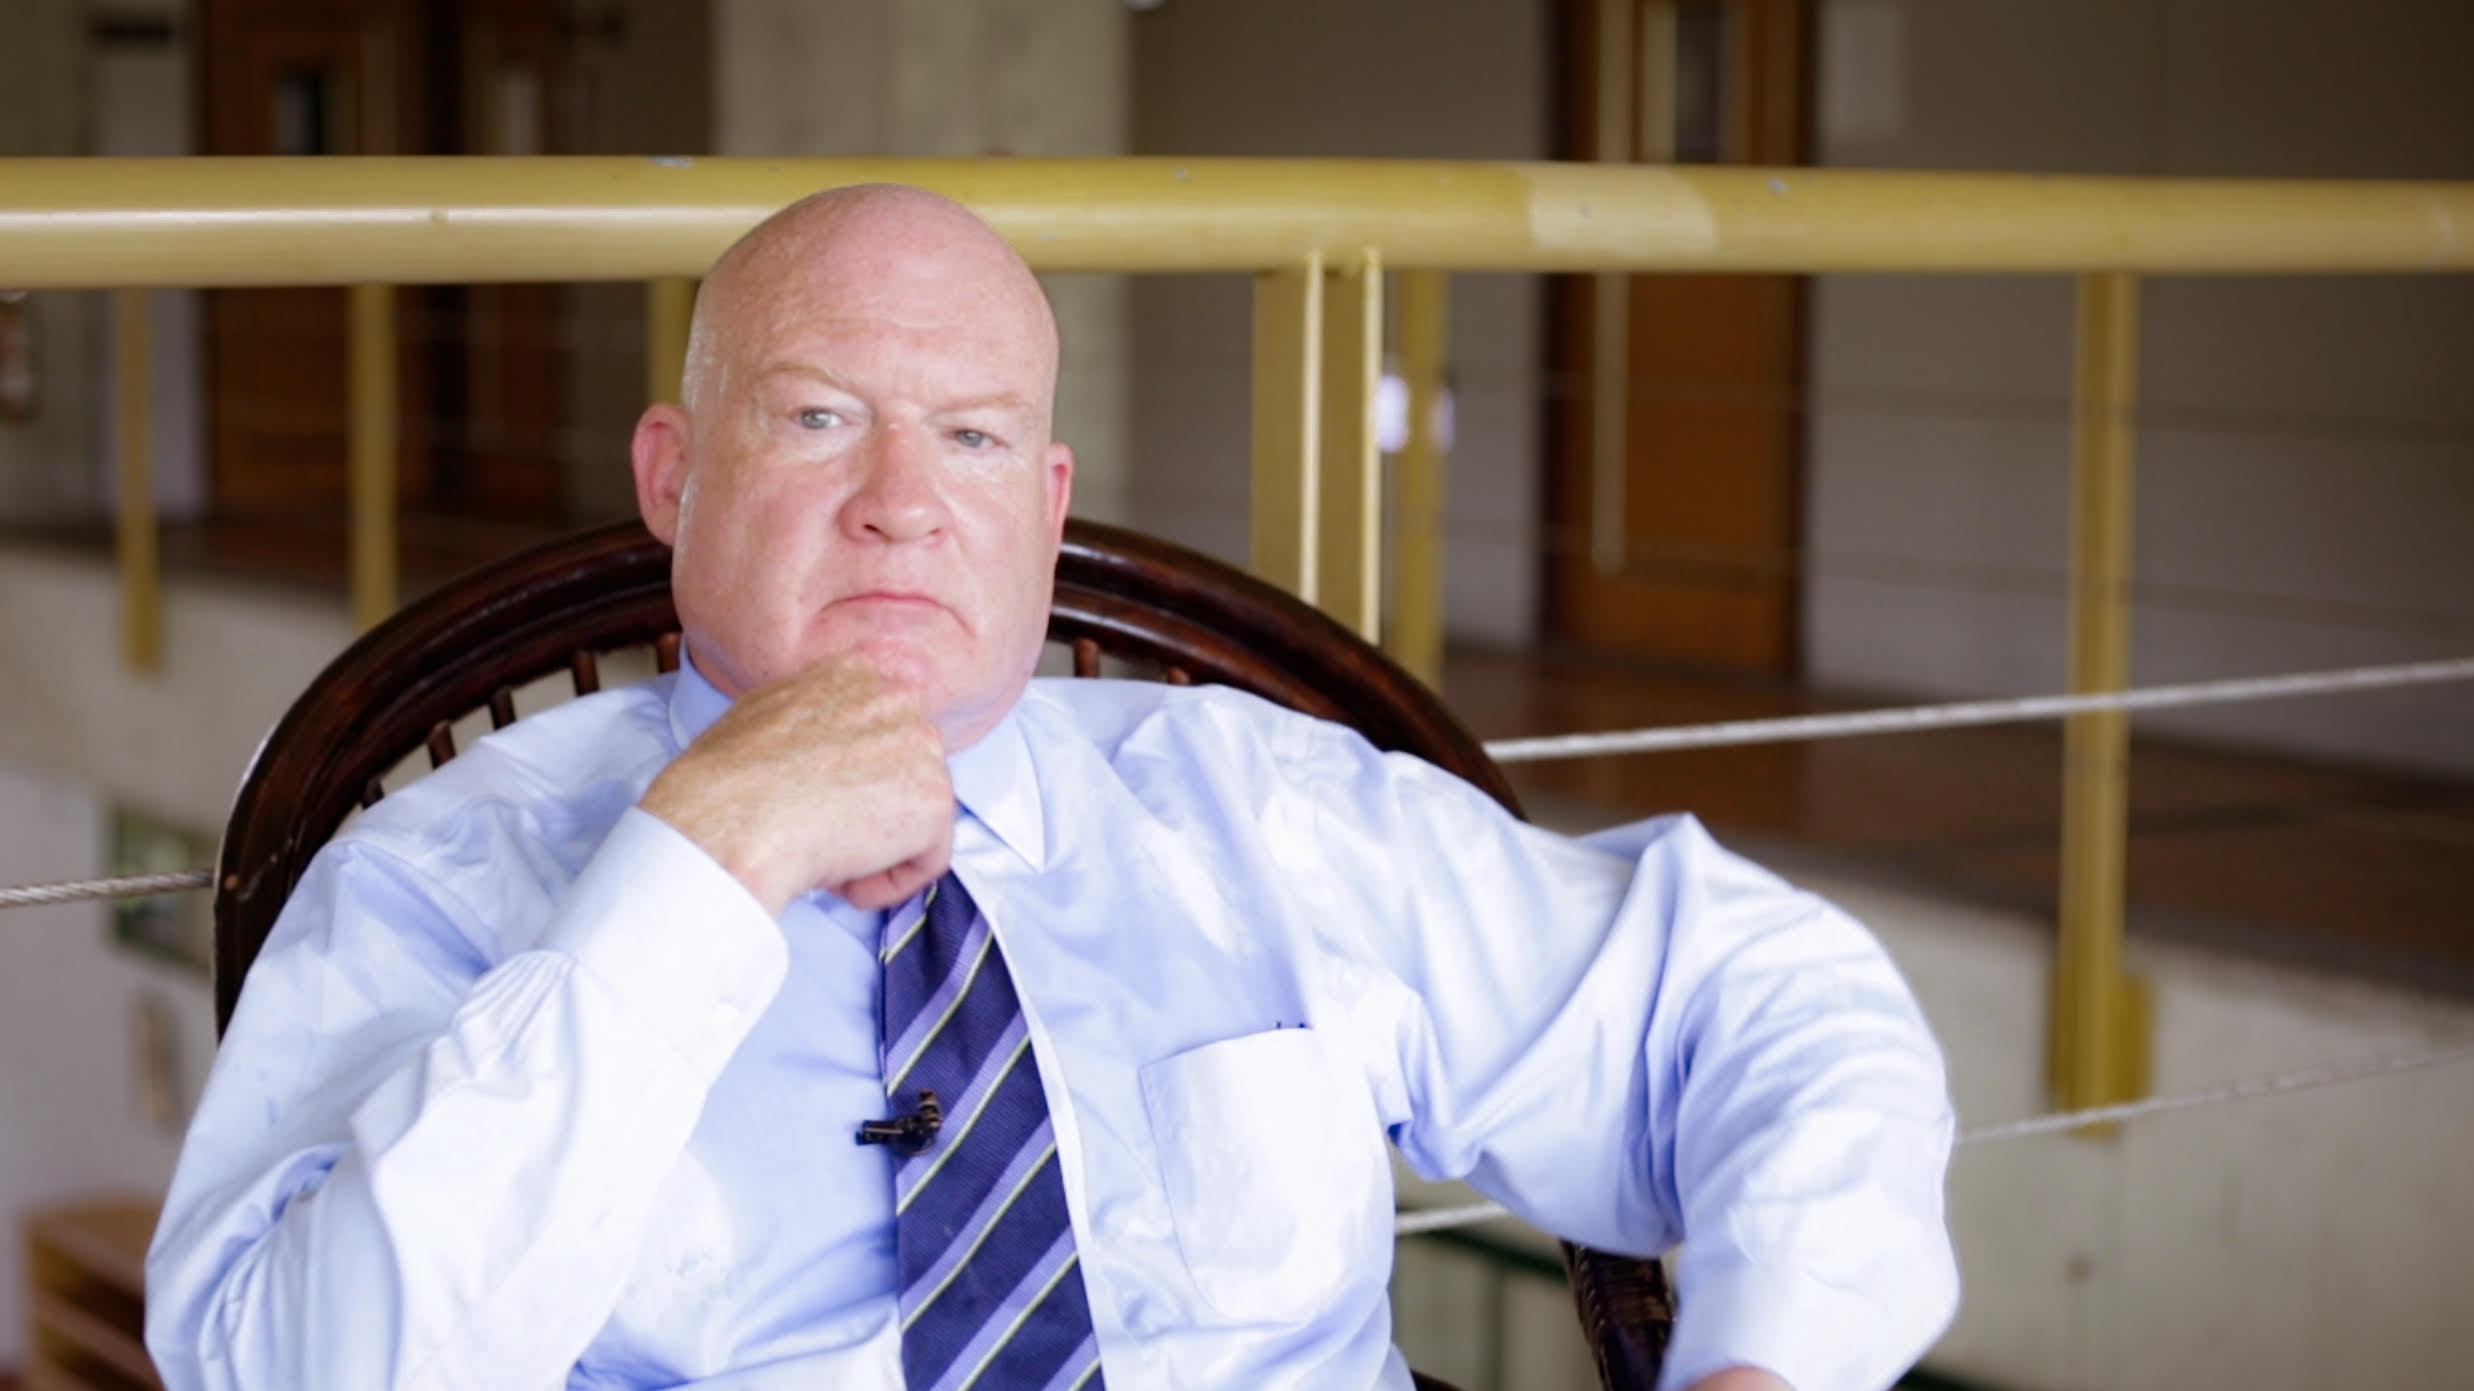 Ethan Gutmann, author of  The Slaughter , a book about mass killings and organ harvesting in China.